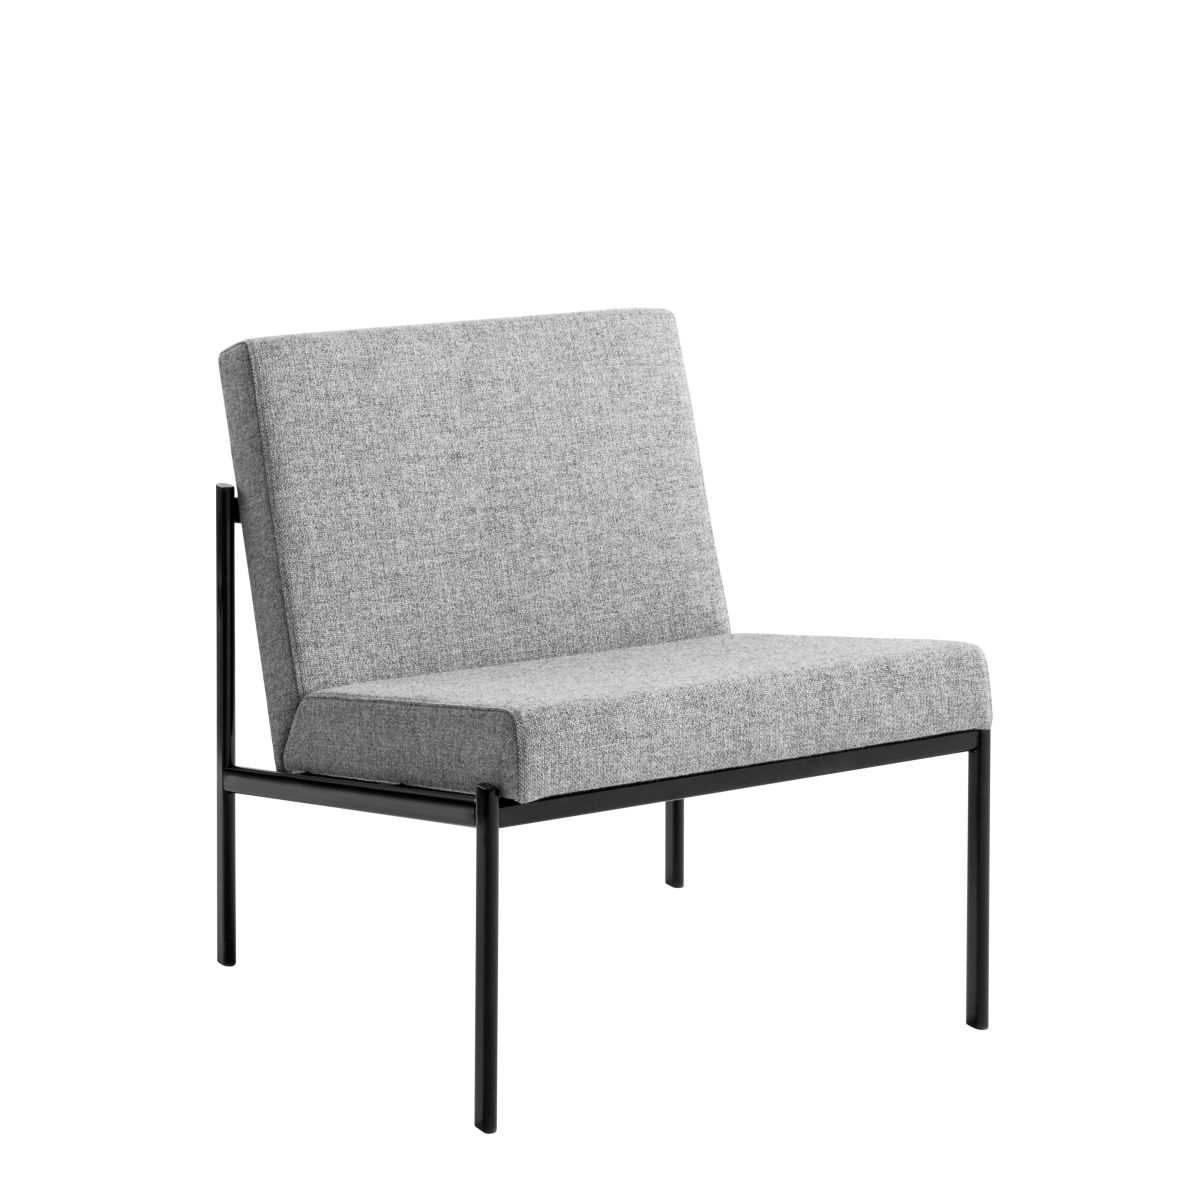 Kiki Lounge Chair grey upholstery_WEB